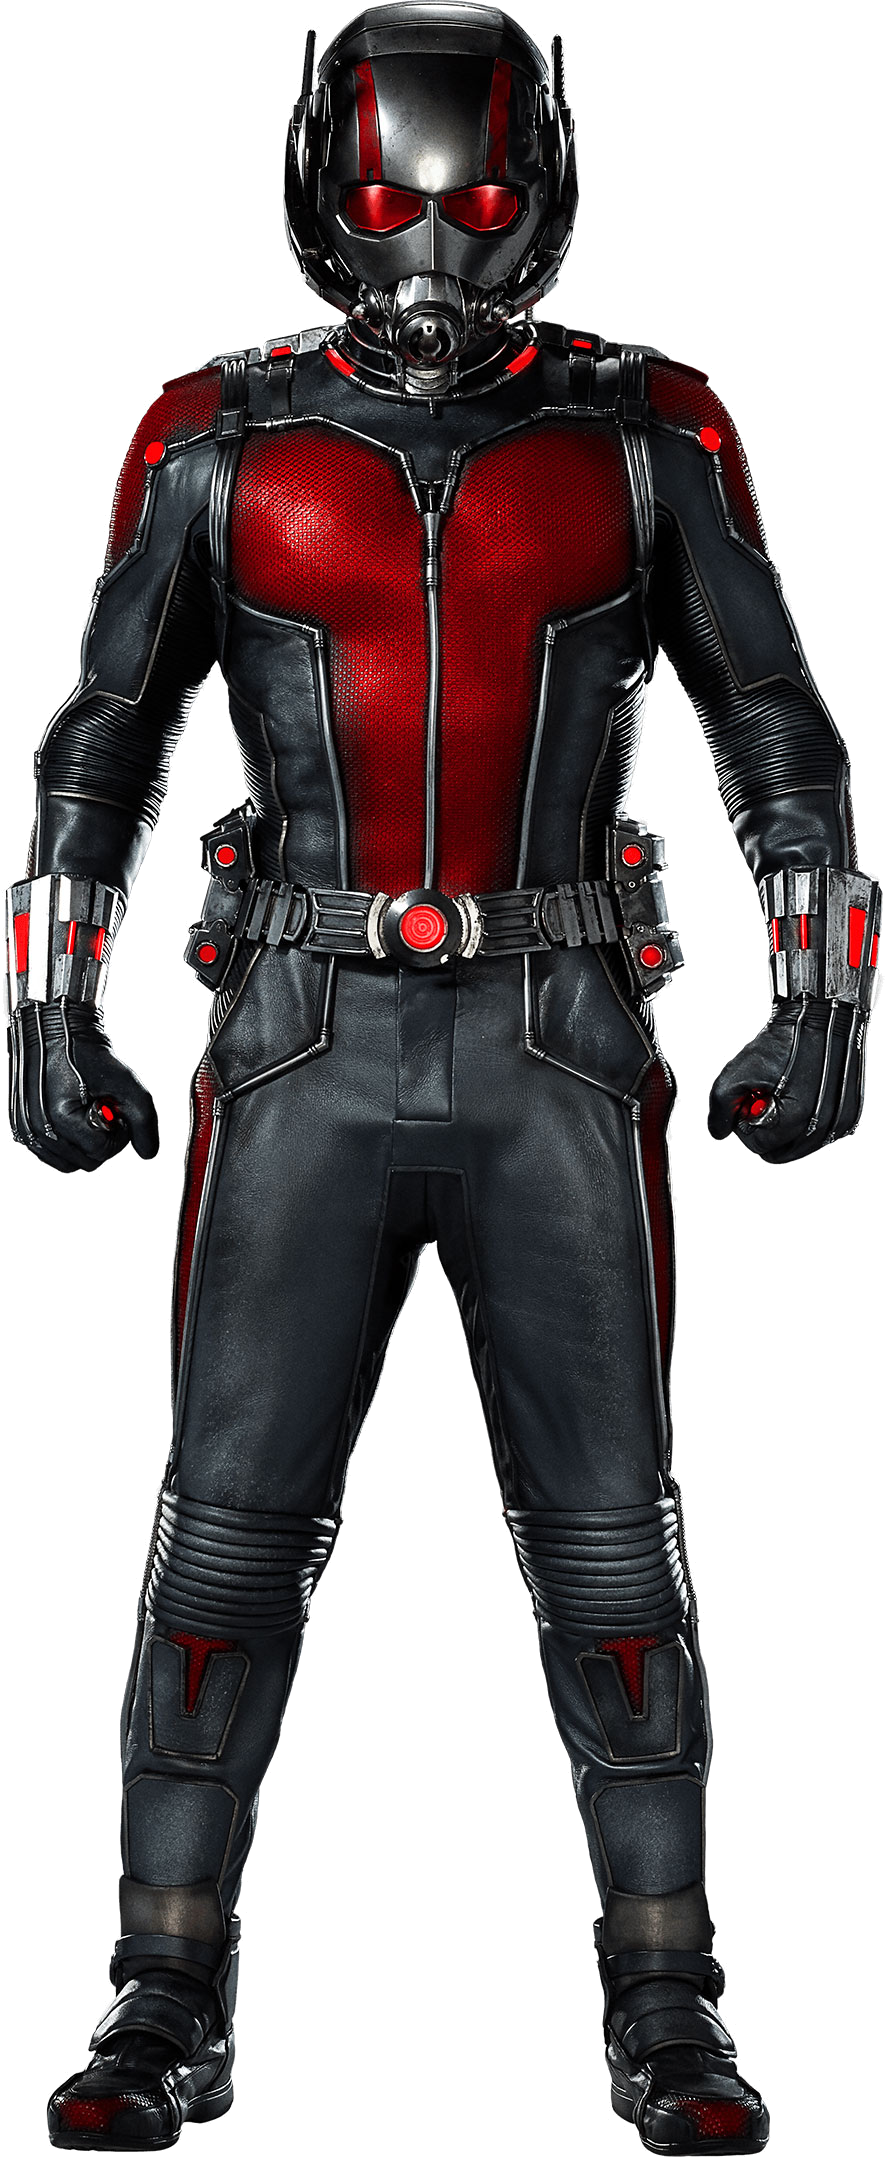 Image - Ant-Man Suit Front.png   Marvel Cinematic Universe Wiki   FANDOM  powered by Wikia - Antman PNG